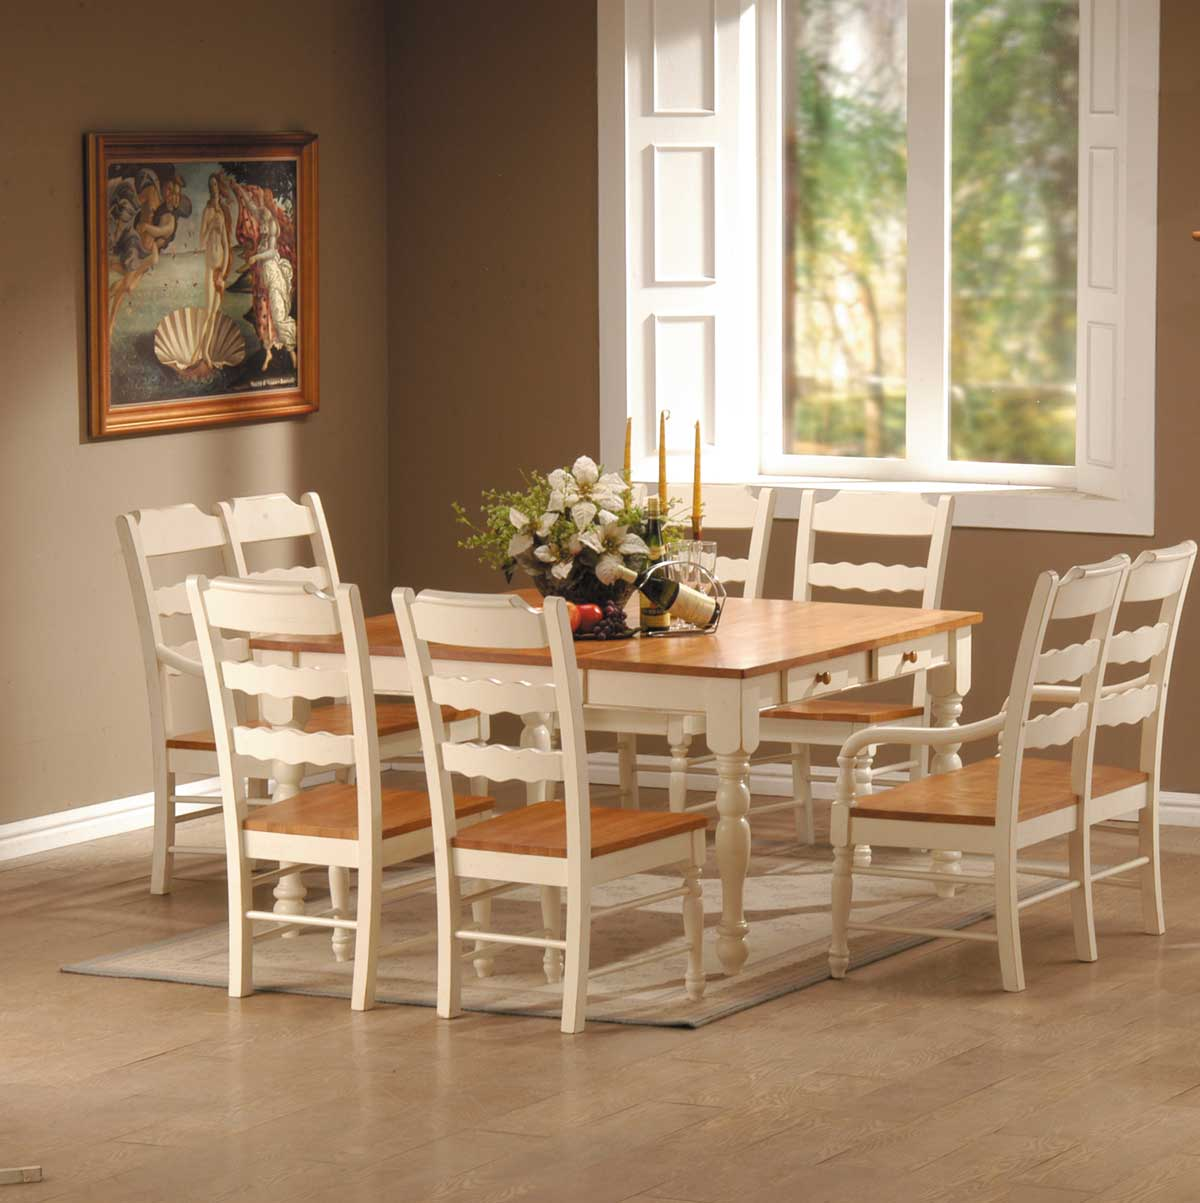 Homelegance Sedgefield Dining Collection in White